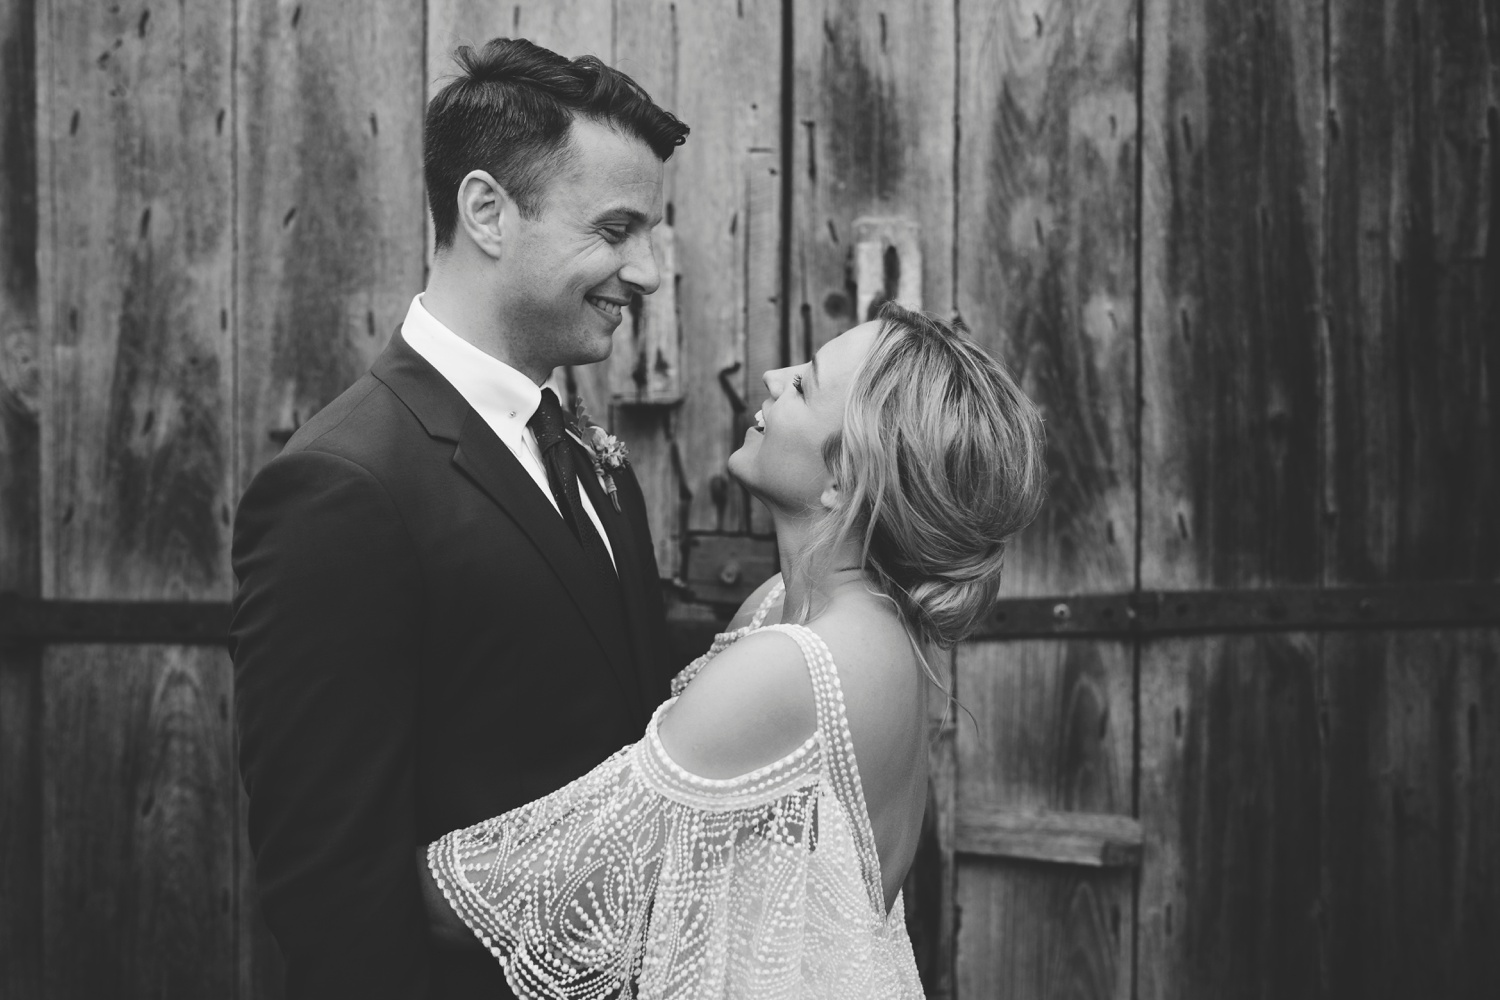 charlie_ray_photography_runaway_romance_elopement_emily_moon_plett_simple_boho_wedding_south_africa_bohemium_0079.jpg